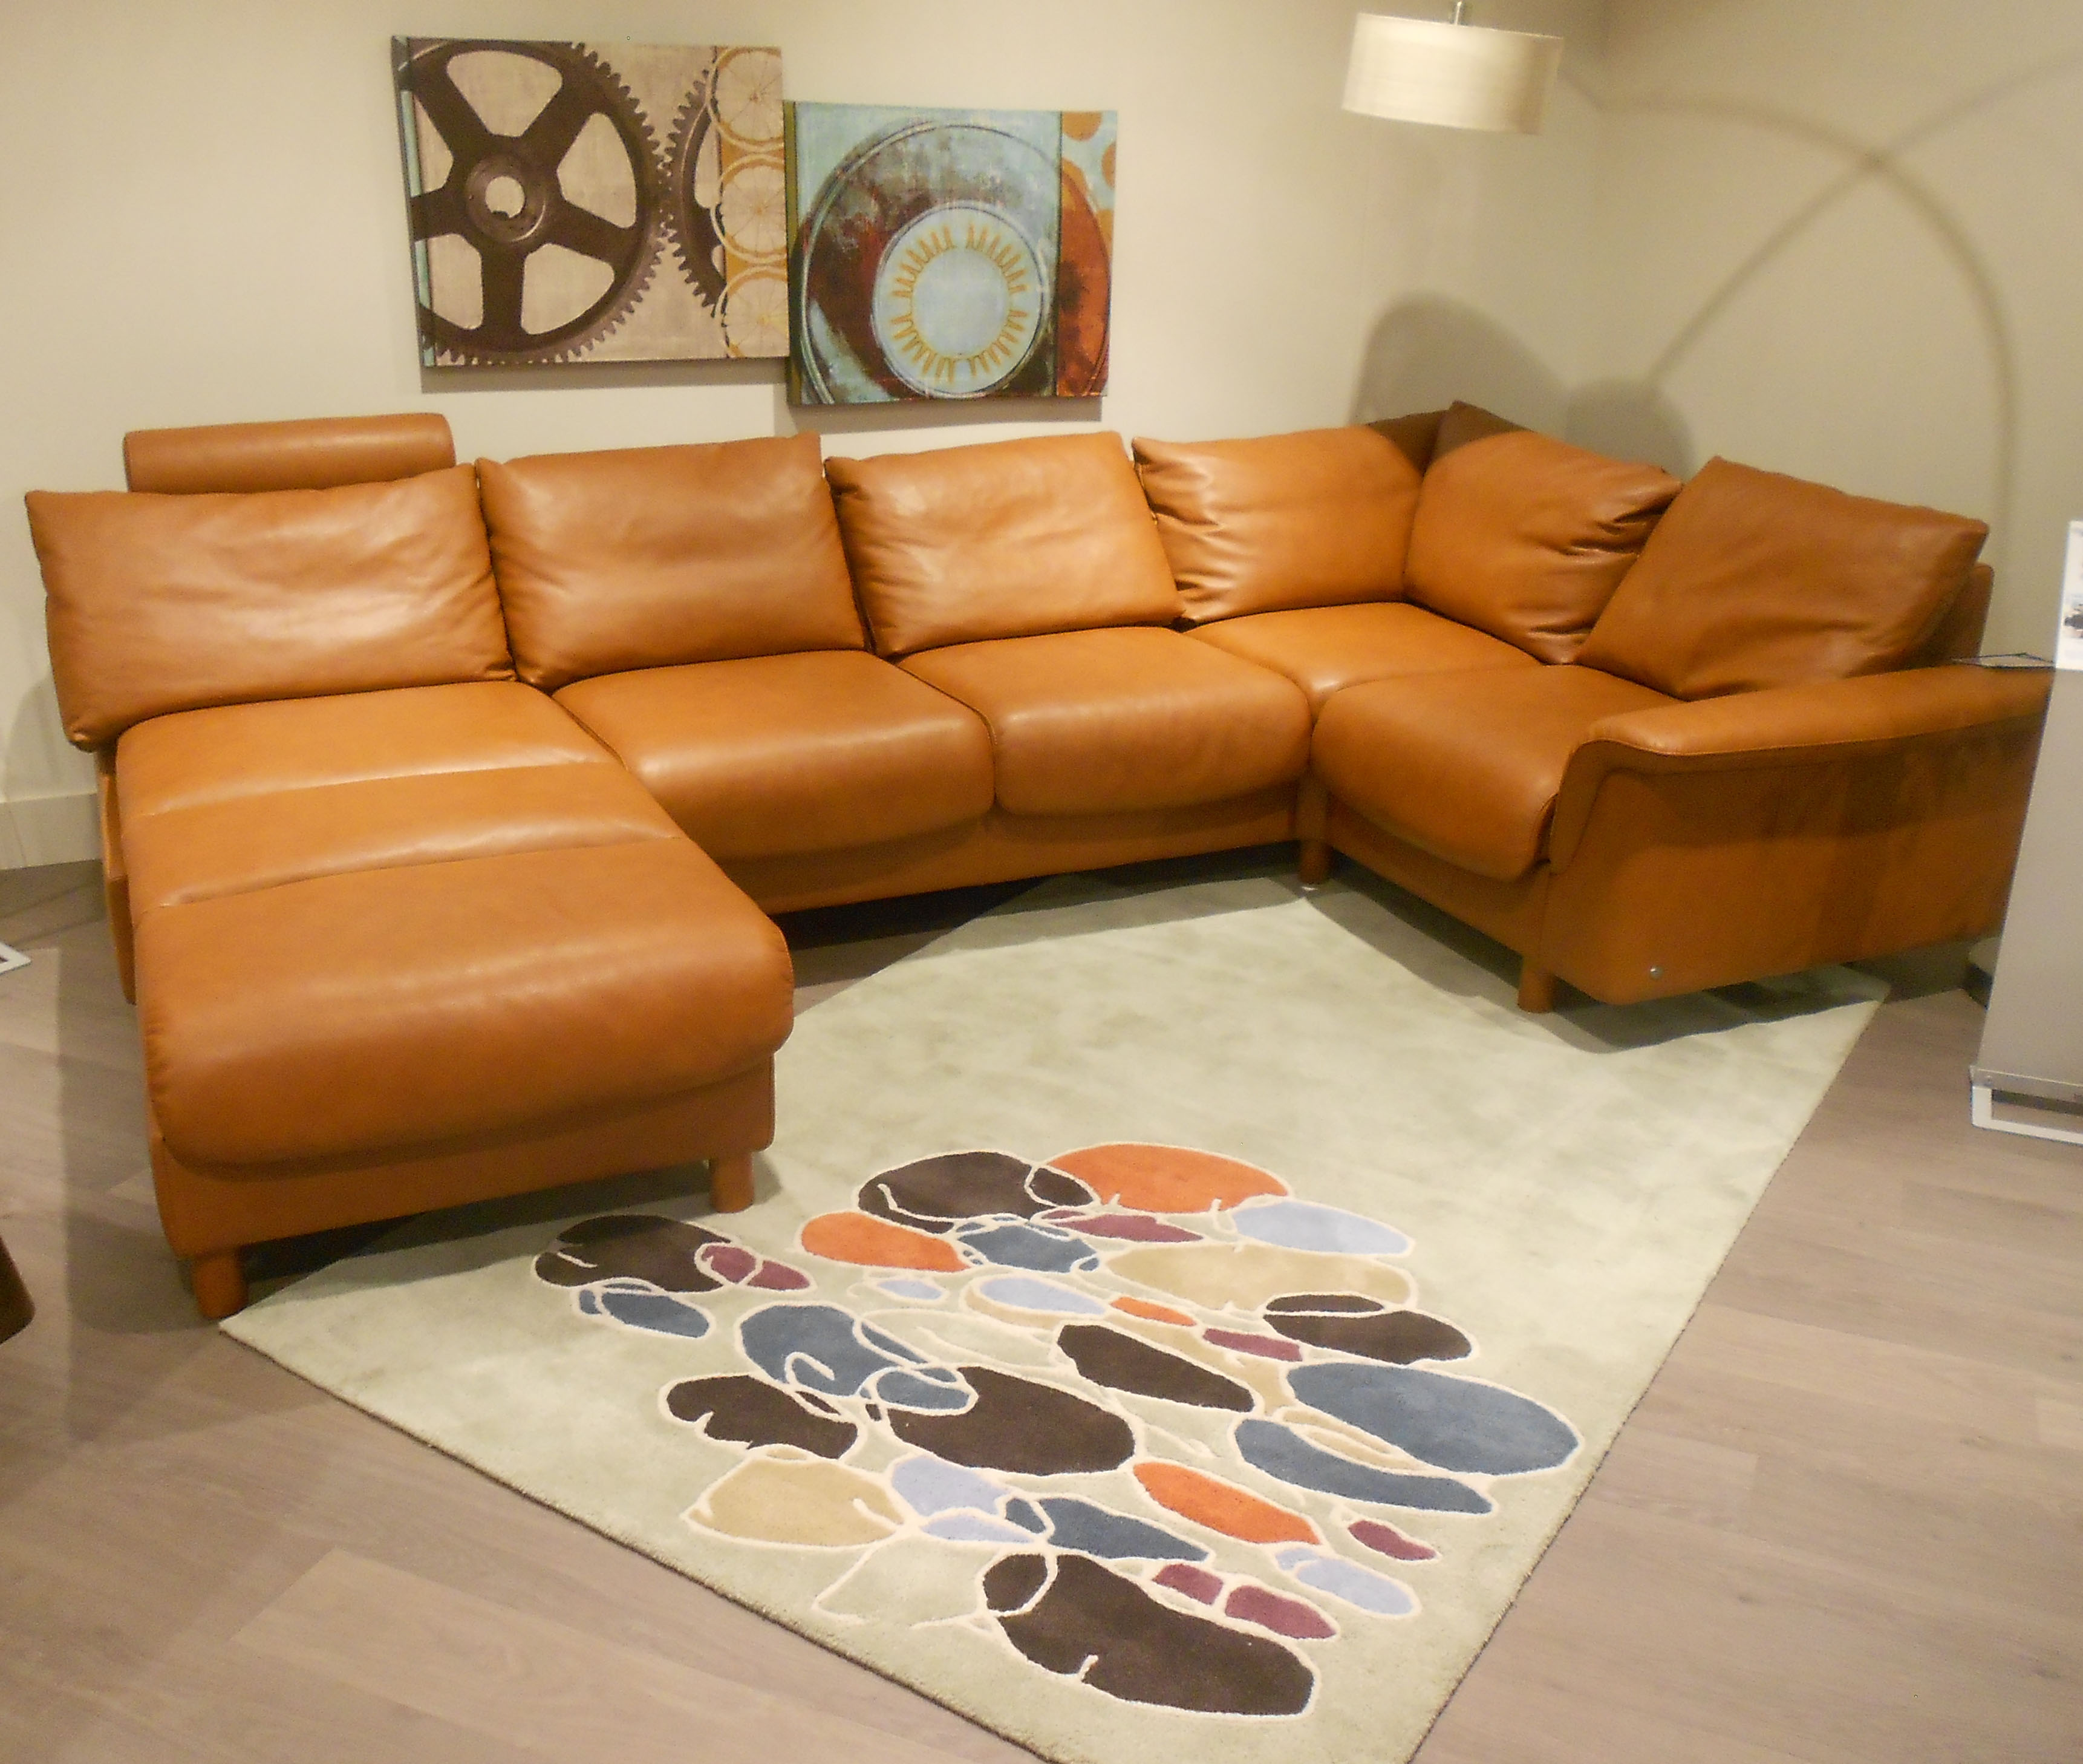 Ekornes Stressless Sofa Hotornotlive : stressless paradise sectional - Sectionals, Sofas & Couches